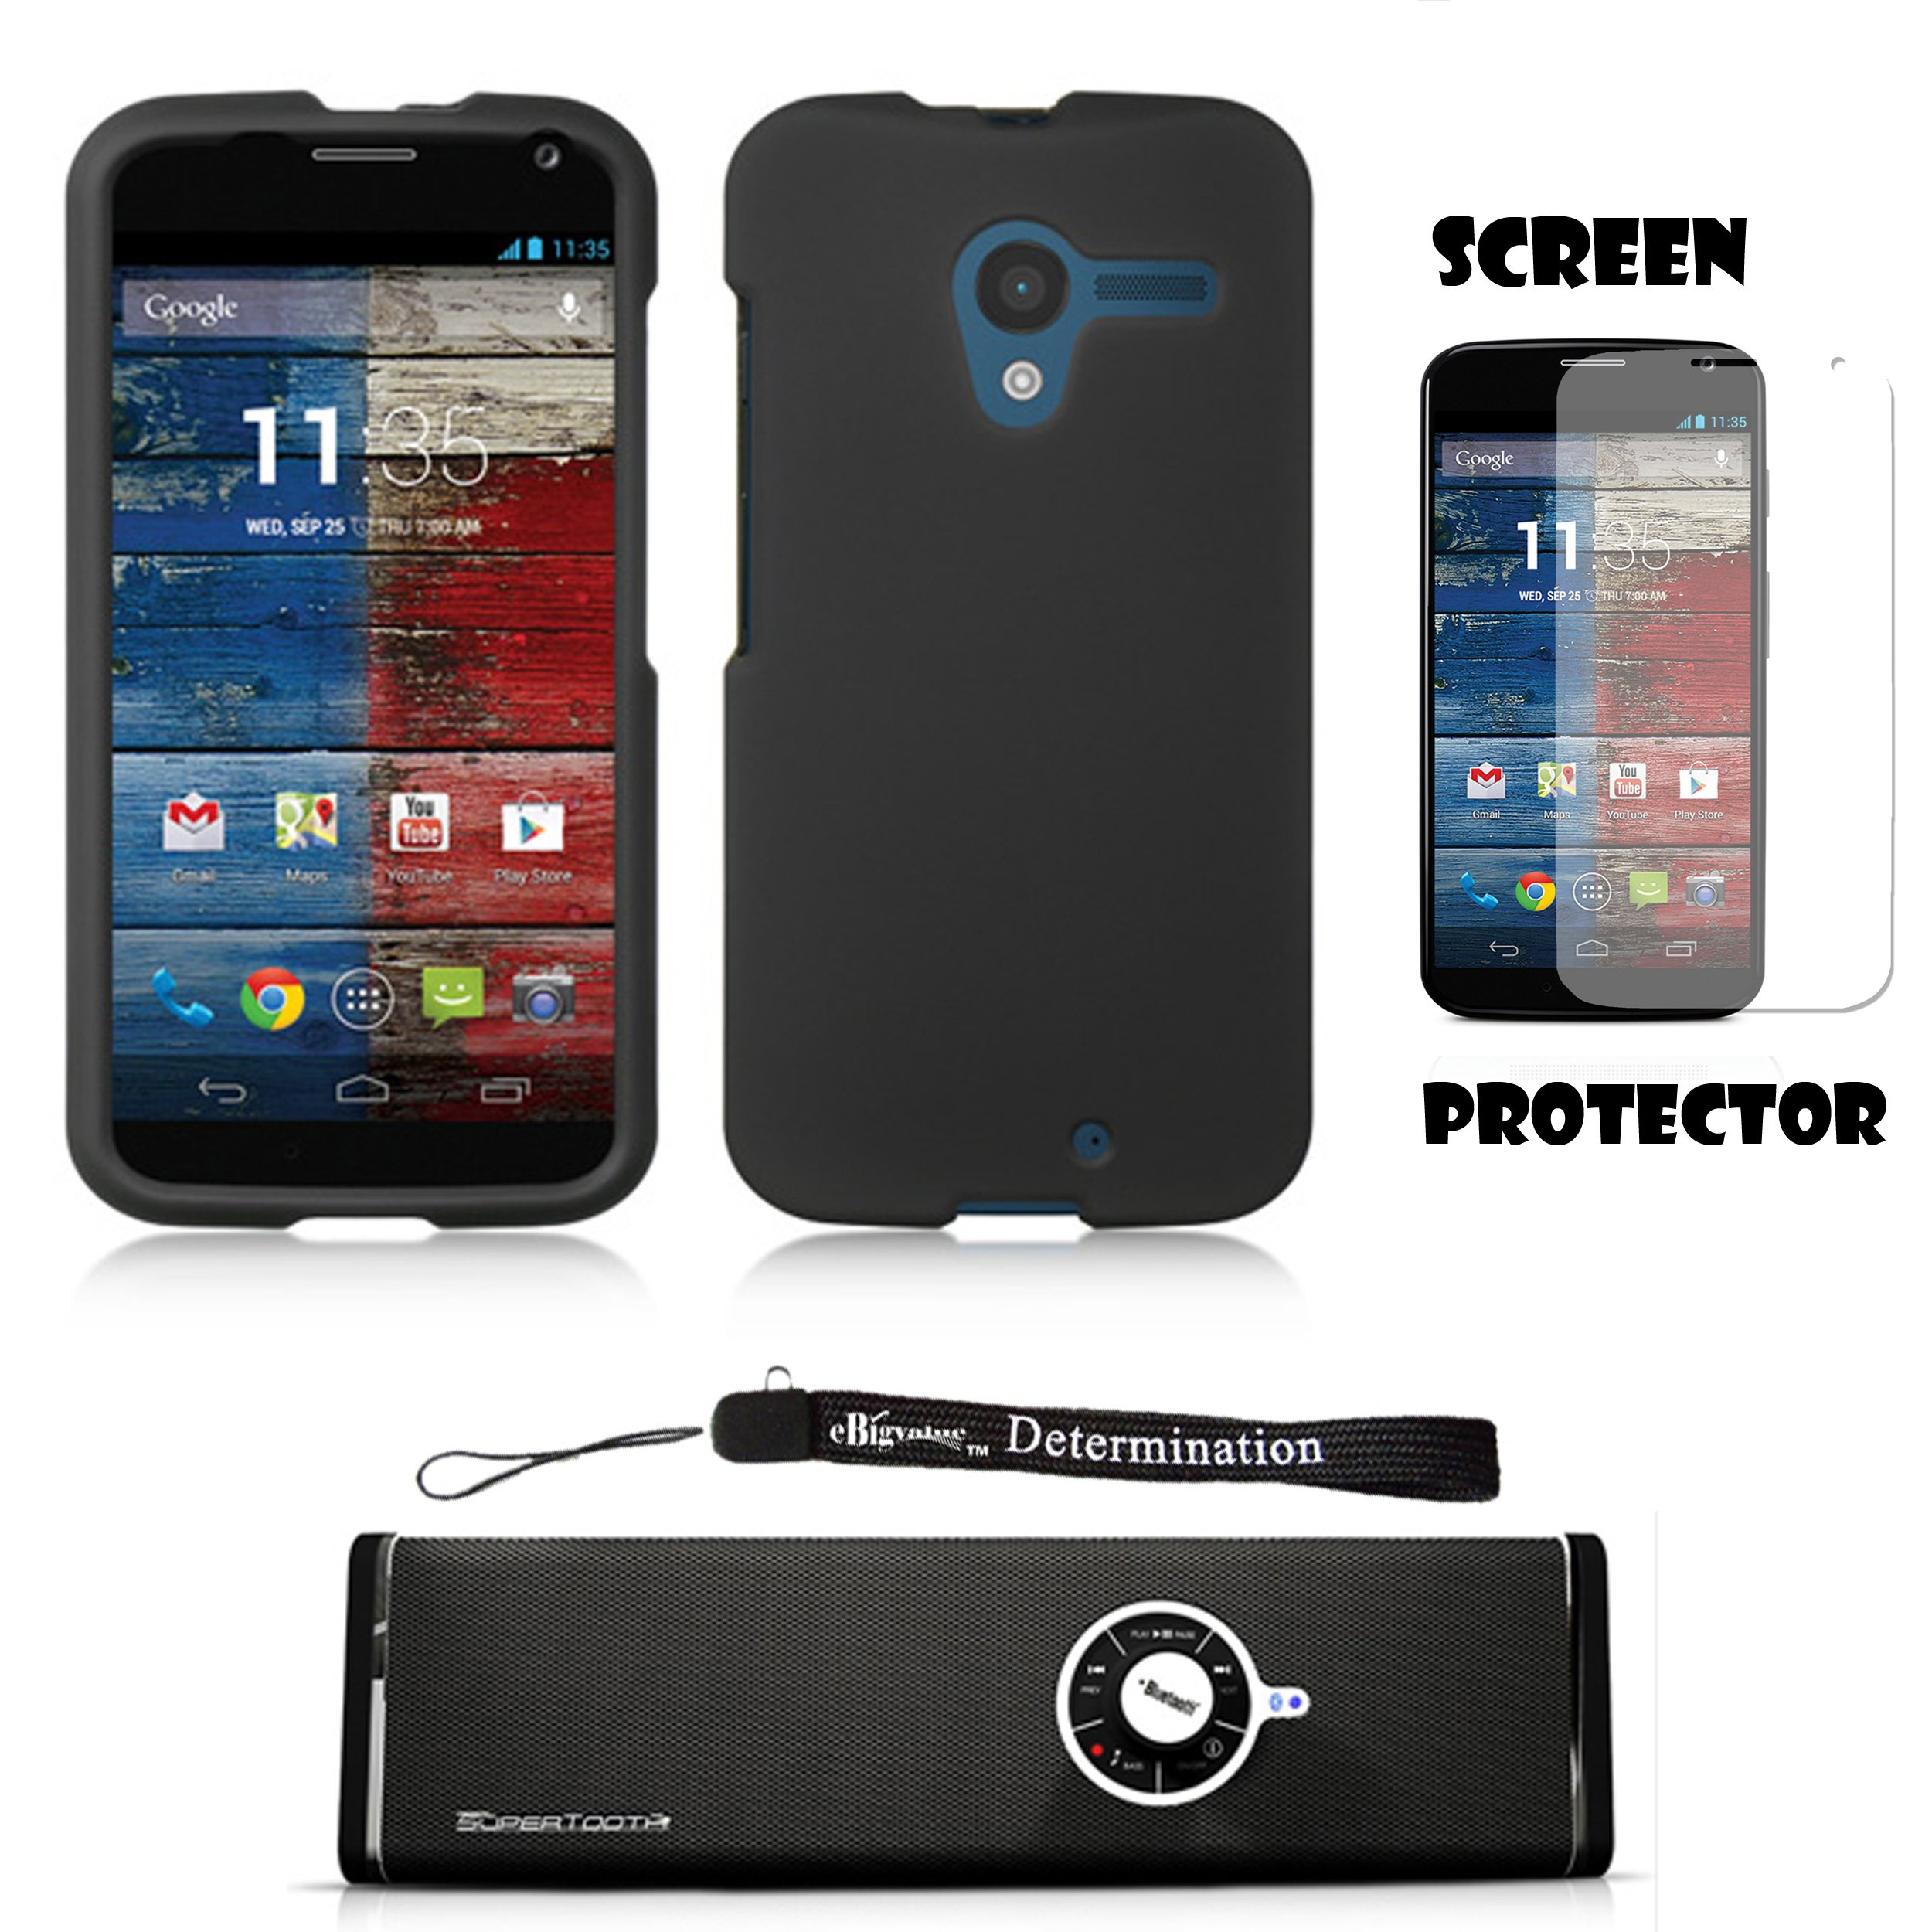 Black Premium Hard Design Crystal Case Snap On Cover For Motorola Moto X Android OS V4 2.2 (Jelly Bean) + Motorola Moto X Clear Screen Protector + Supertooth Disco Bluetooth Speaker with AUX Cable + an eBigValue Determination Hand Strap by eBigValue